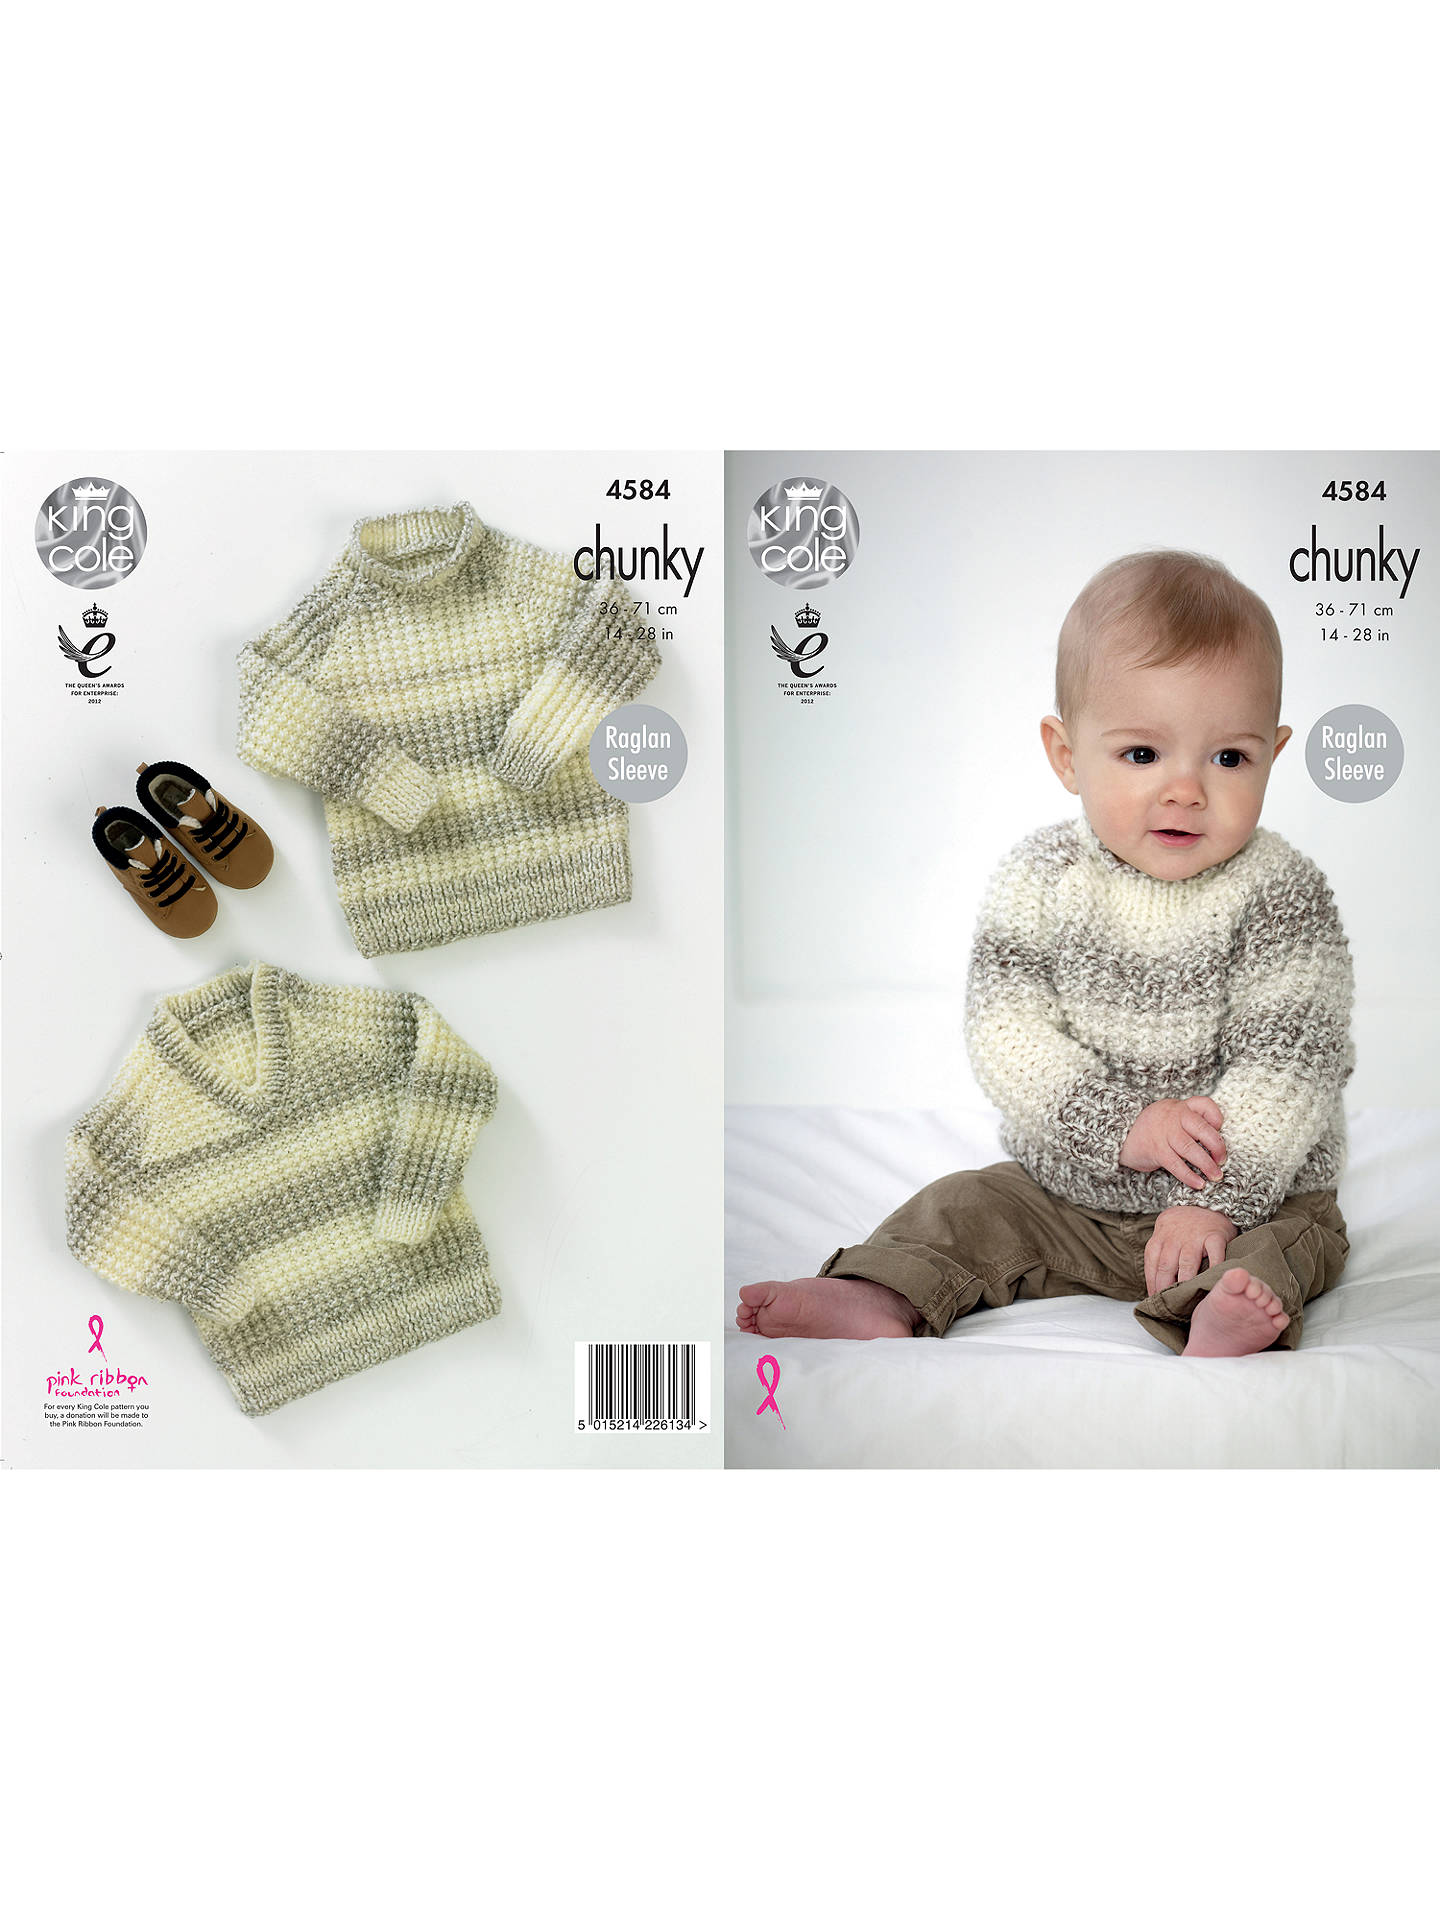 36dc722e010 King Cole Comfort Chunky Baby Jumper Knitting Pattern, 4584